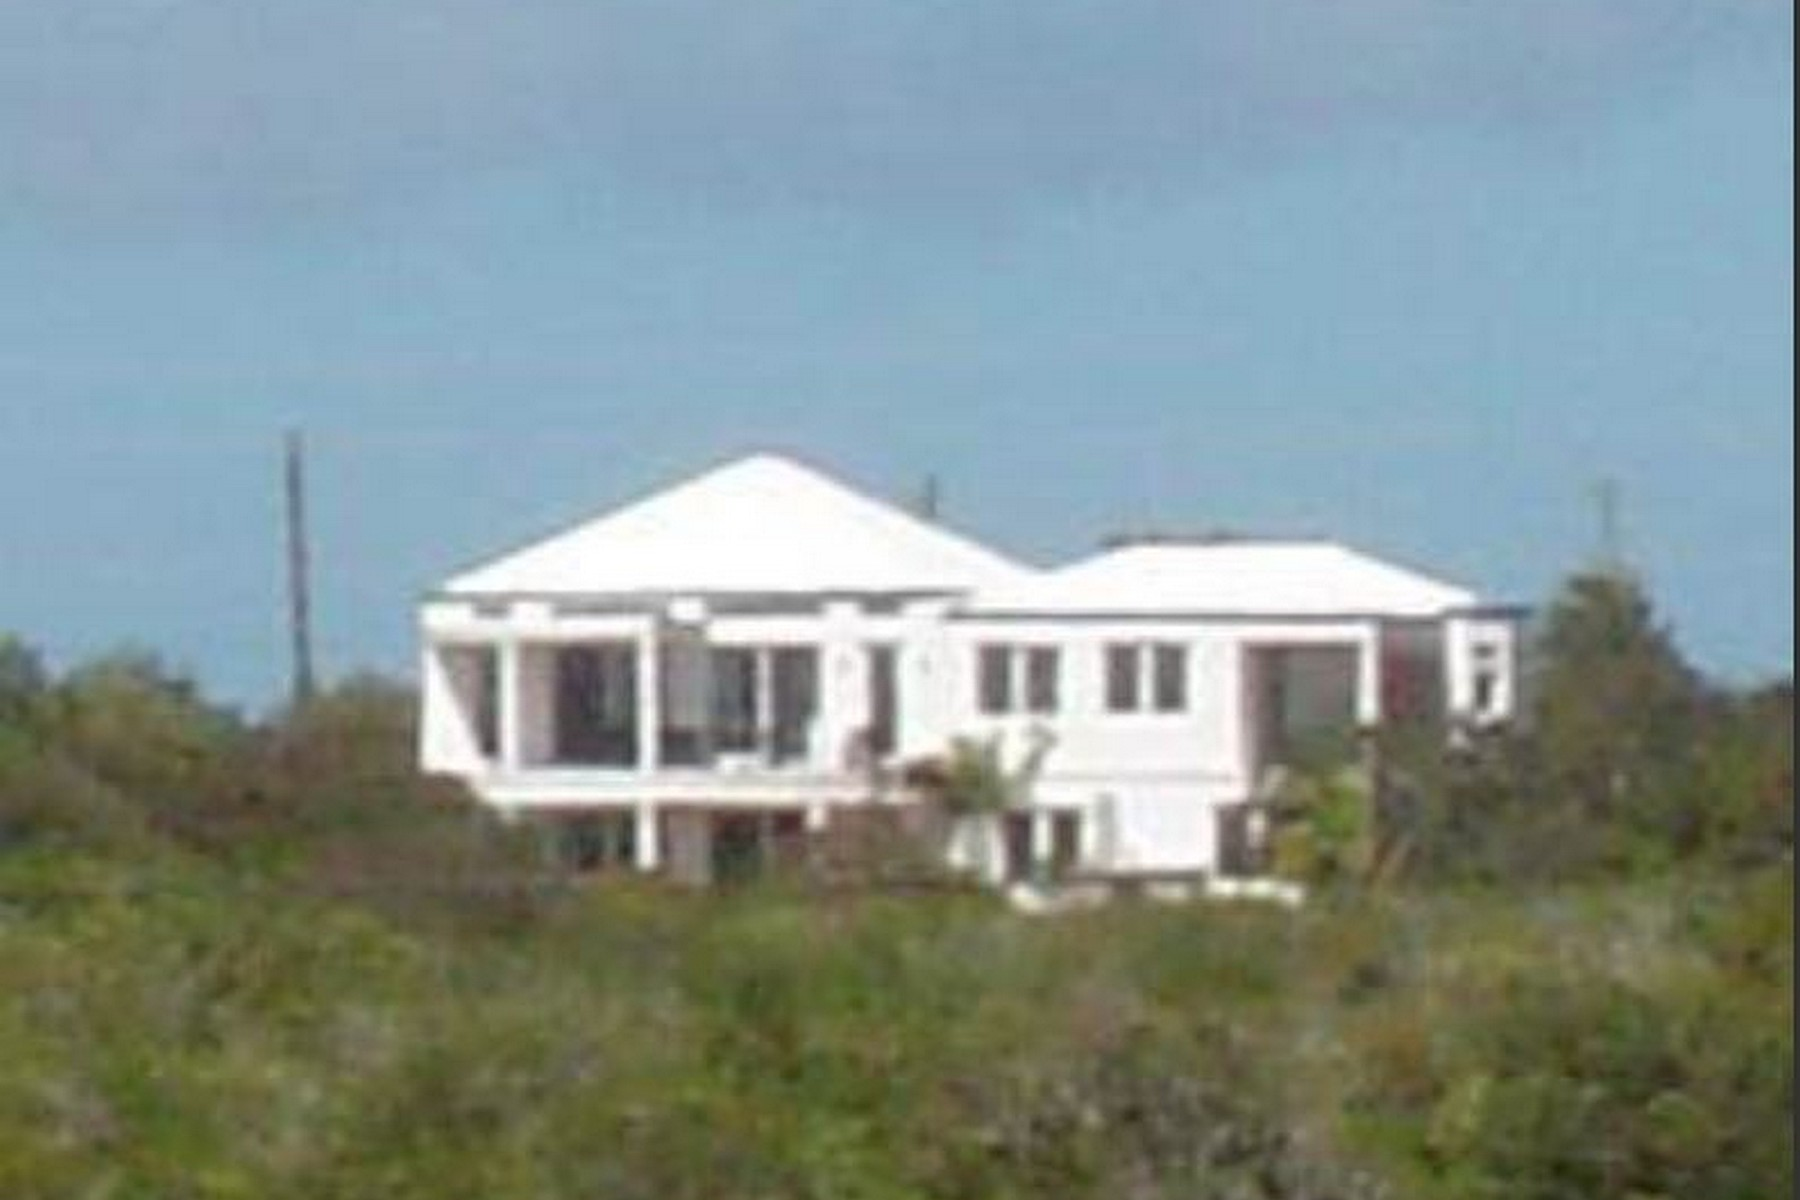 Casa Unifamiliar por un Venta en David's Delight West End Other Anguilla, AI 2640 Anguila